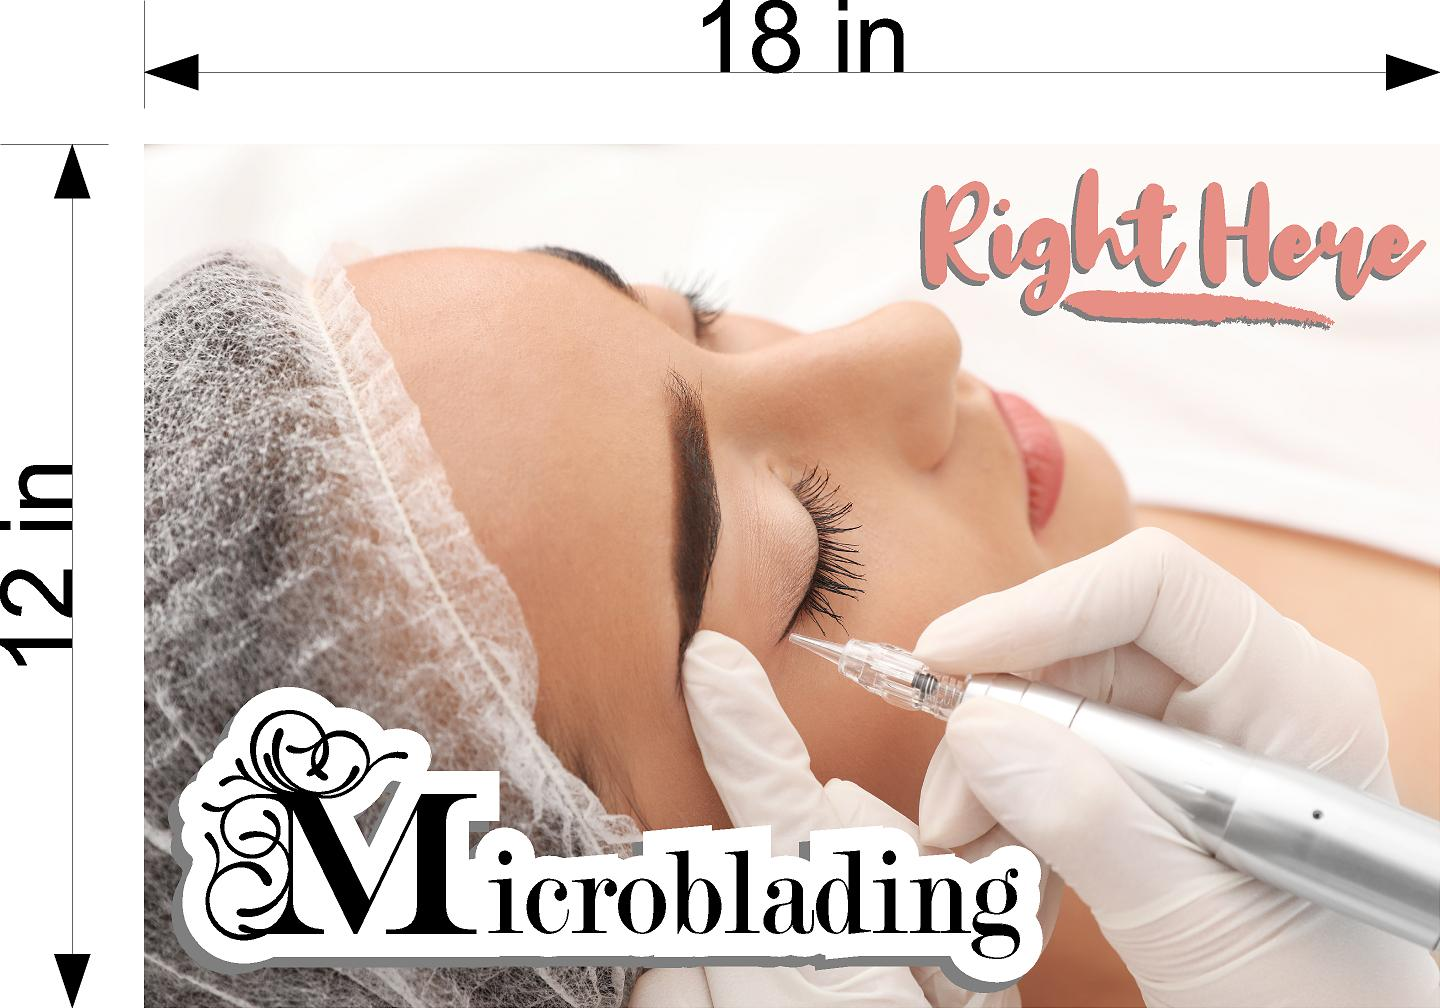 Microblading 19 Wallpaper Fabric Poster with Adhesive Backing Wall Interior Services Permanent Makeup Tattoo Horizontal